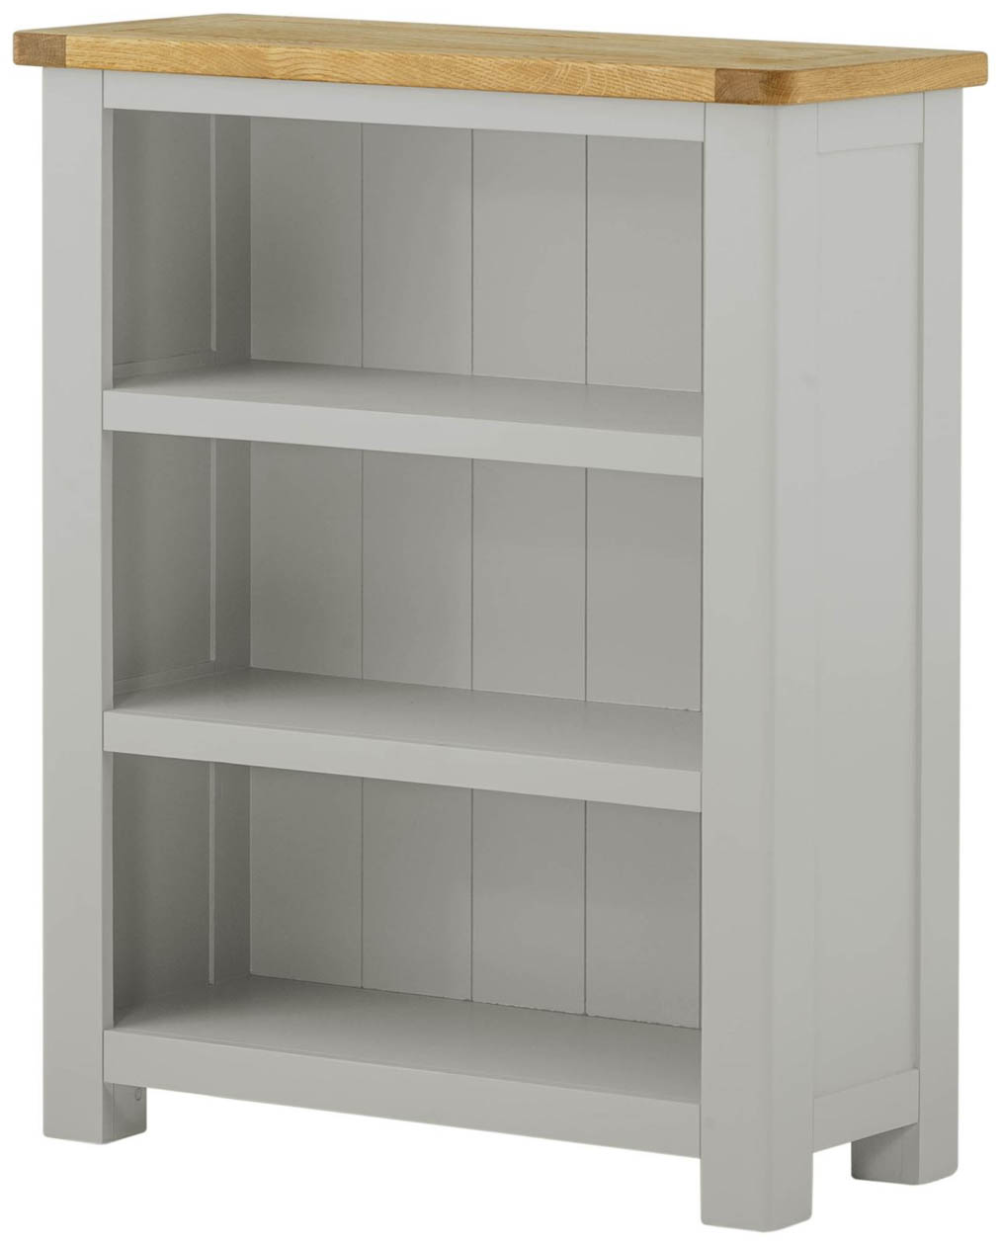 Portland Stone Grey Painted Small Bookcase Fully Assembled In